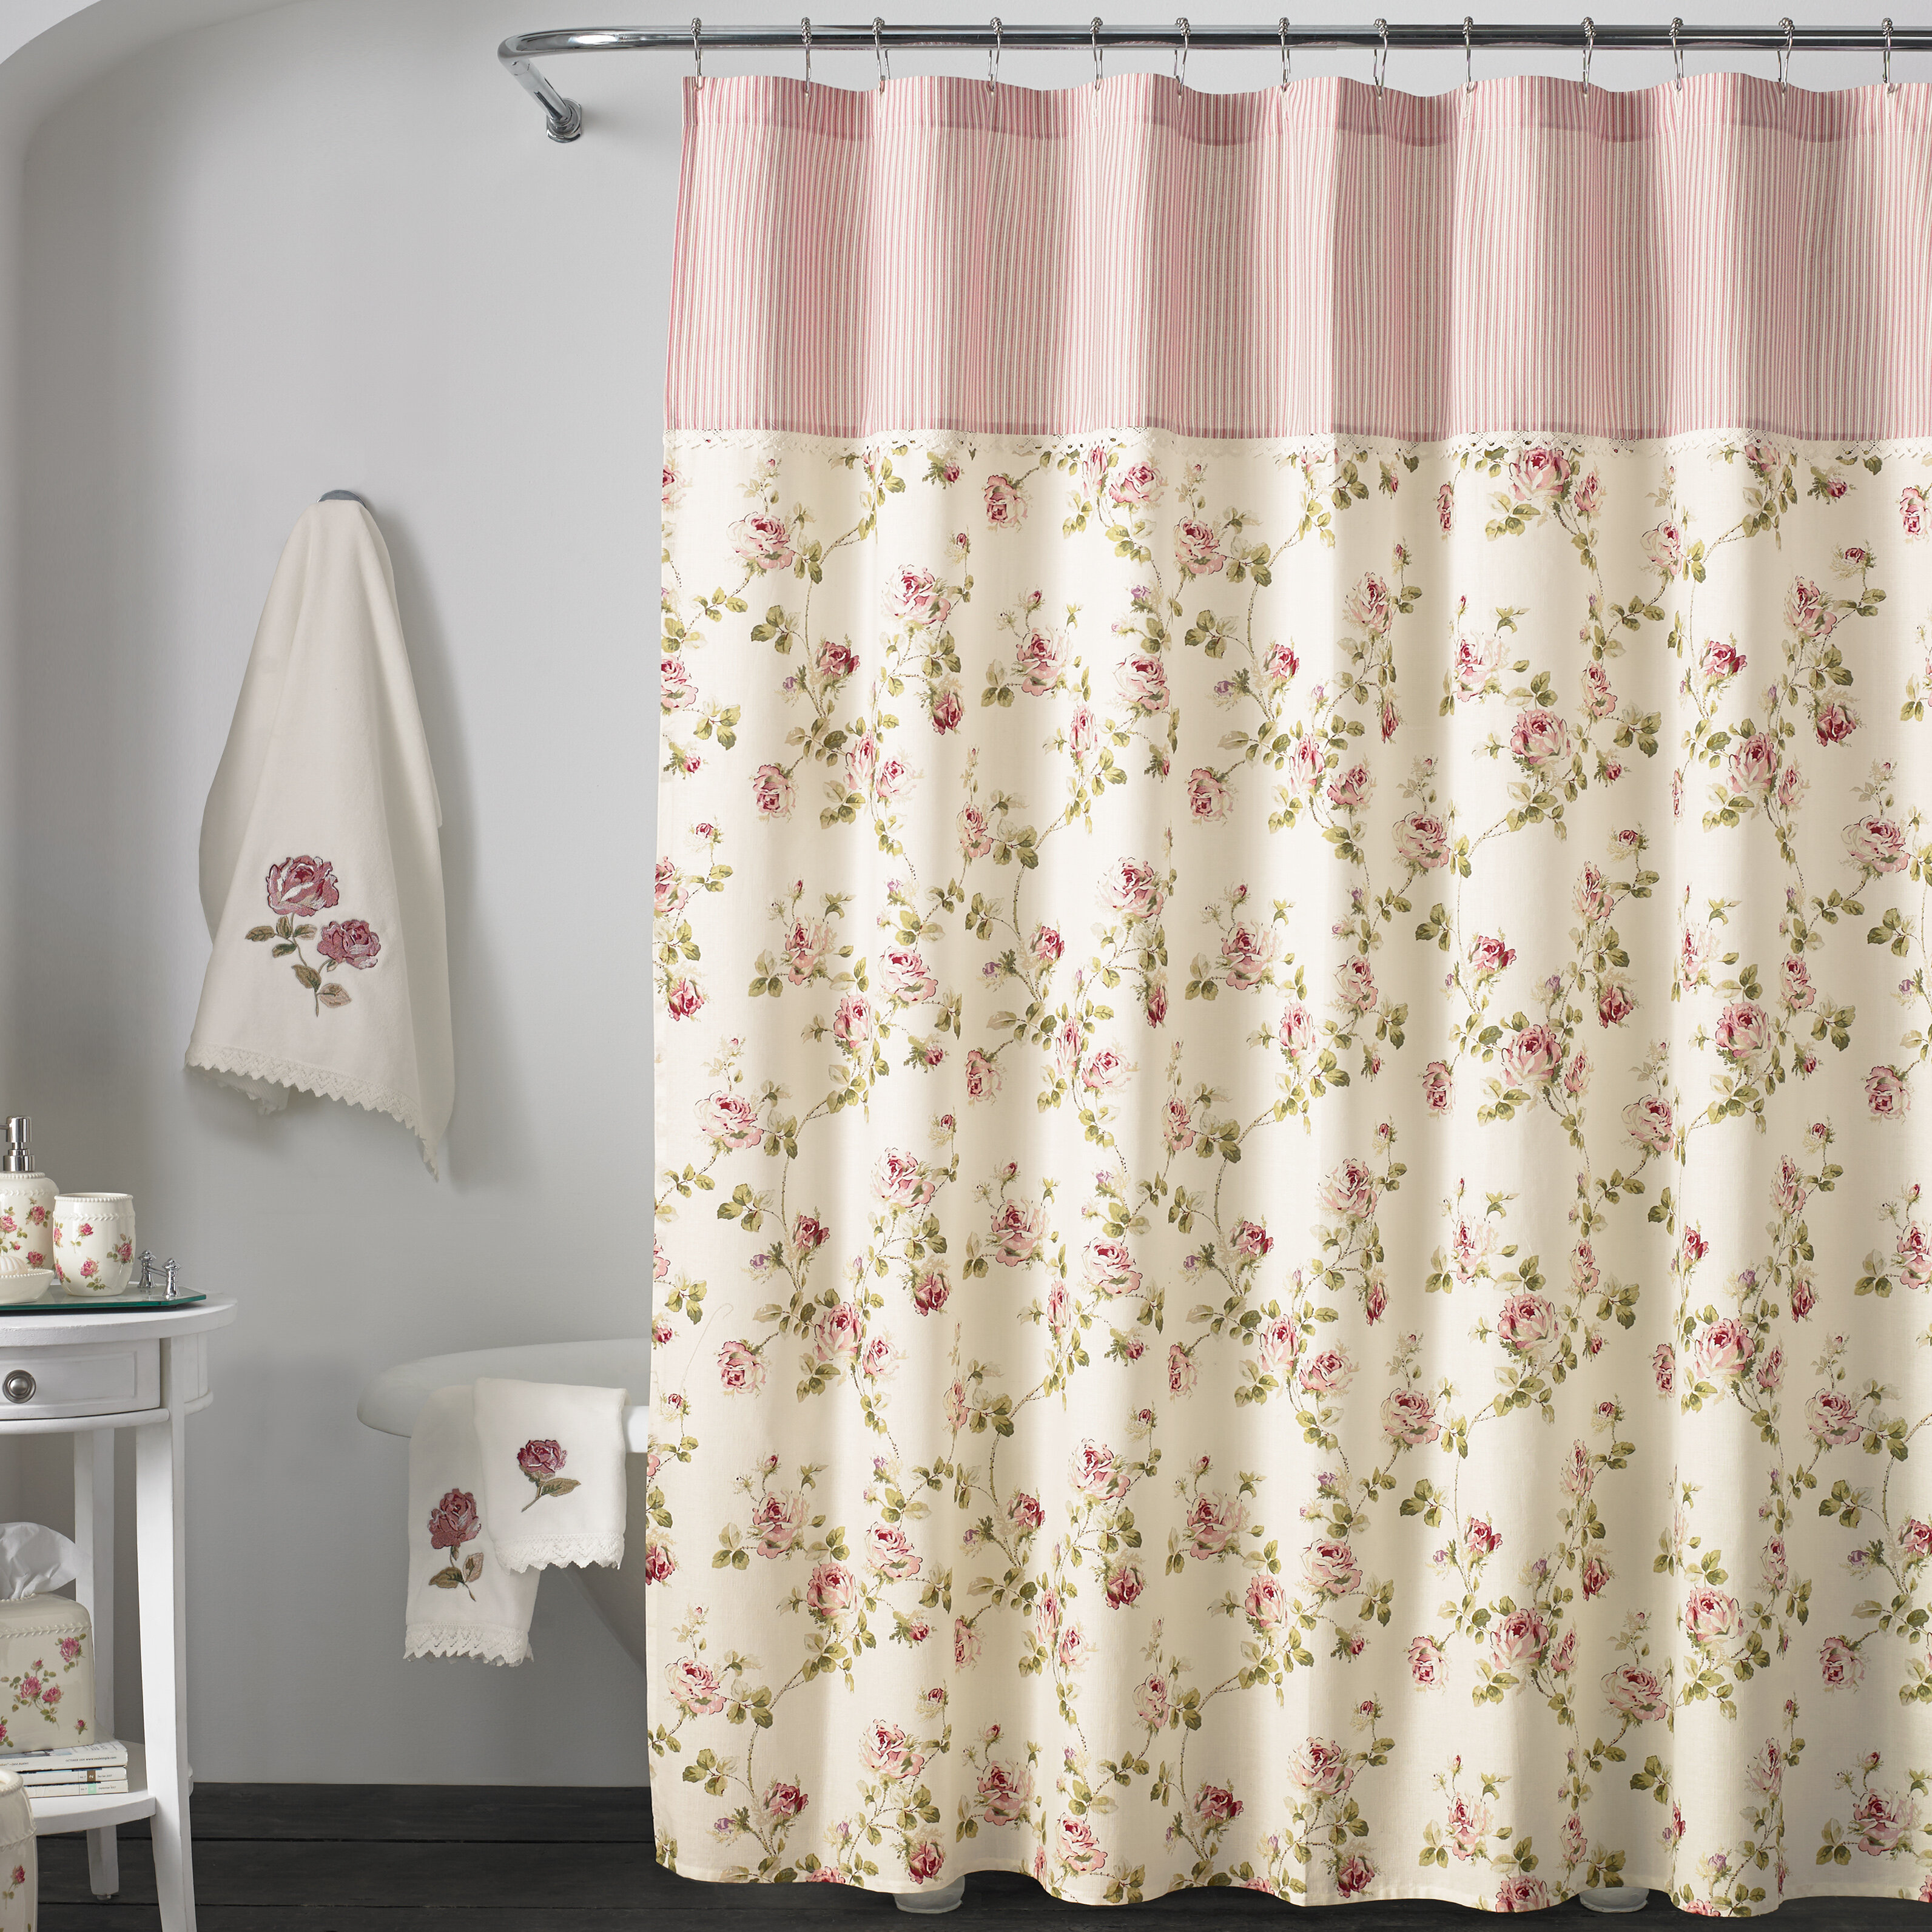 Ophelia Co Rigby Cotton Floral Single Shower Curtain Reviews Wayfair